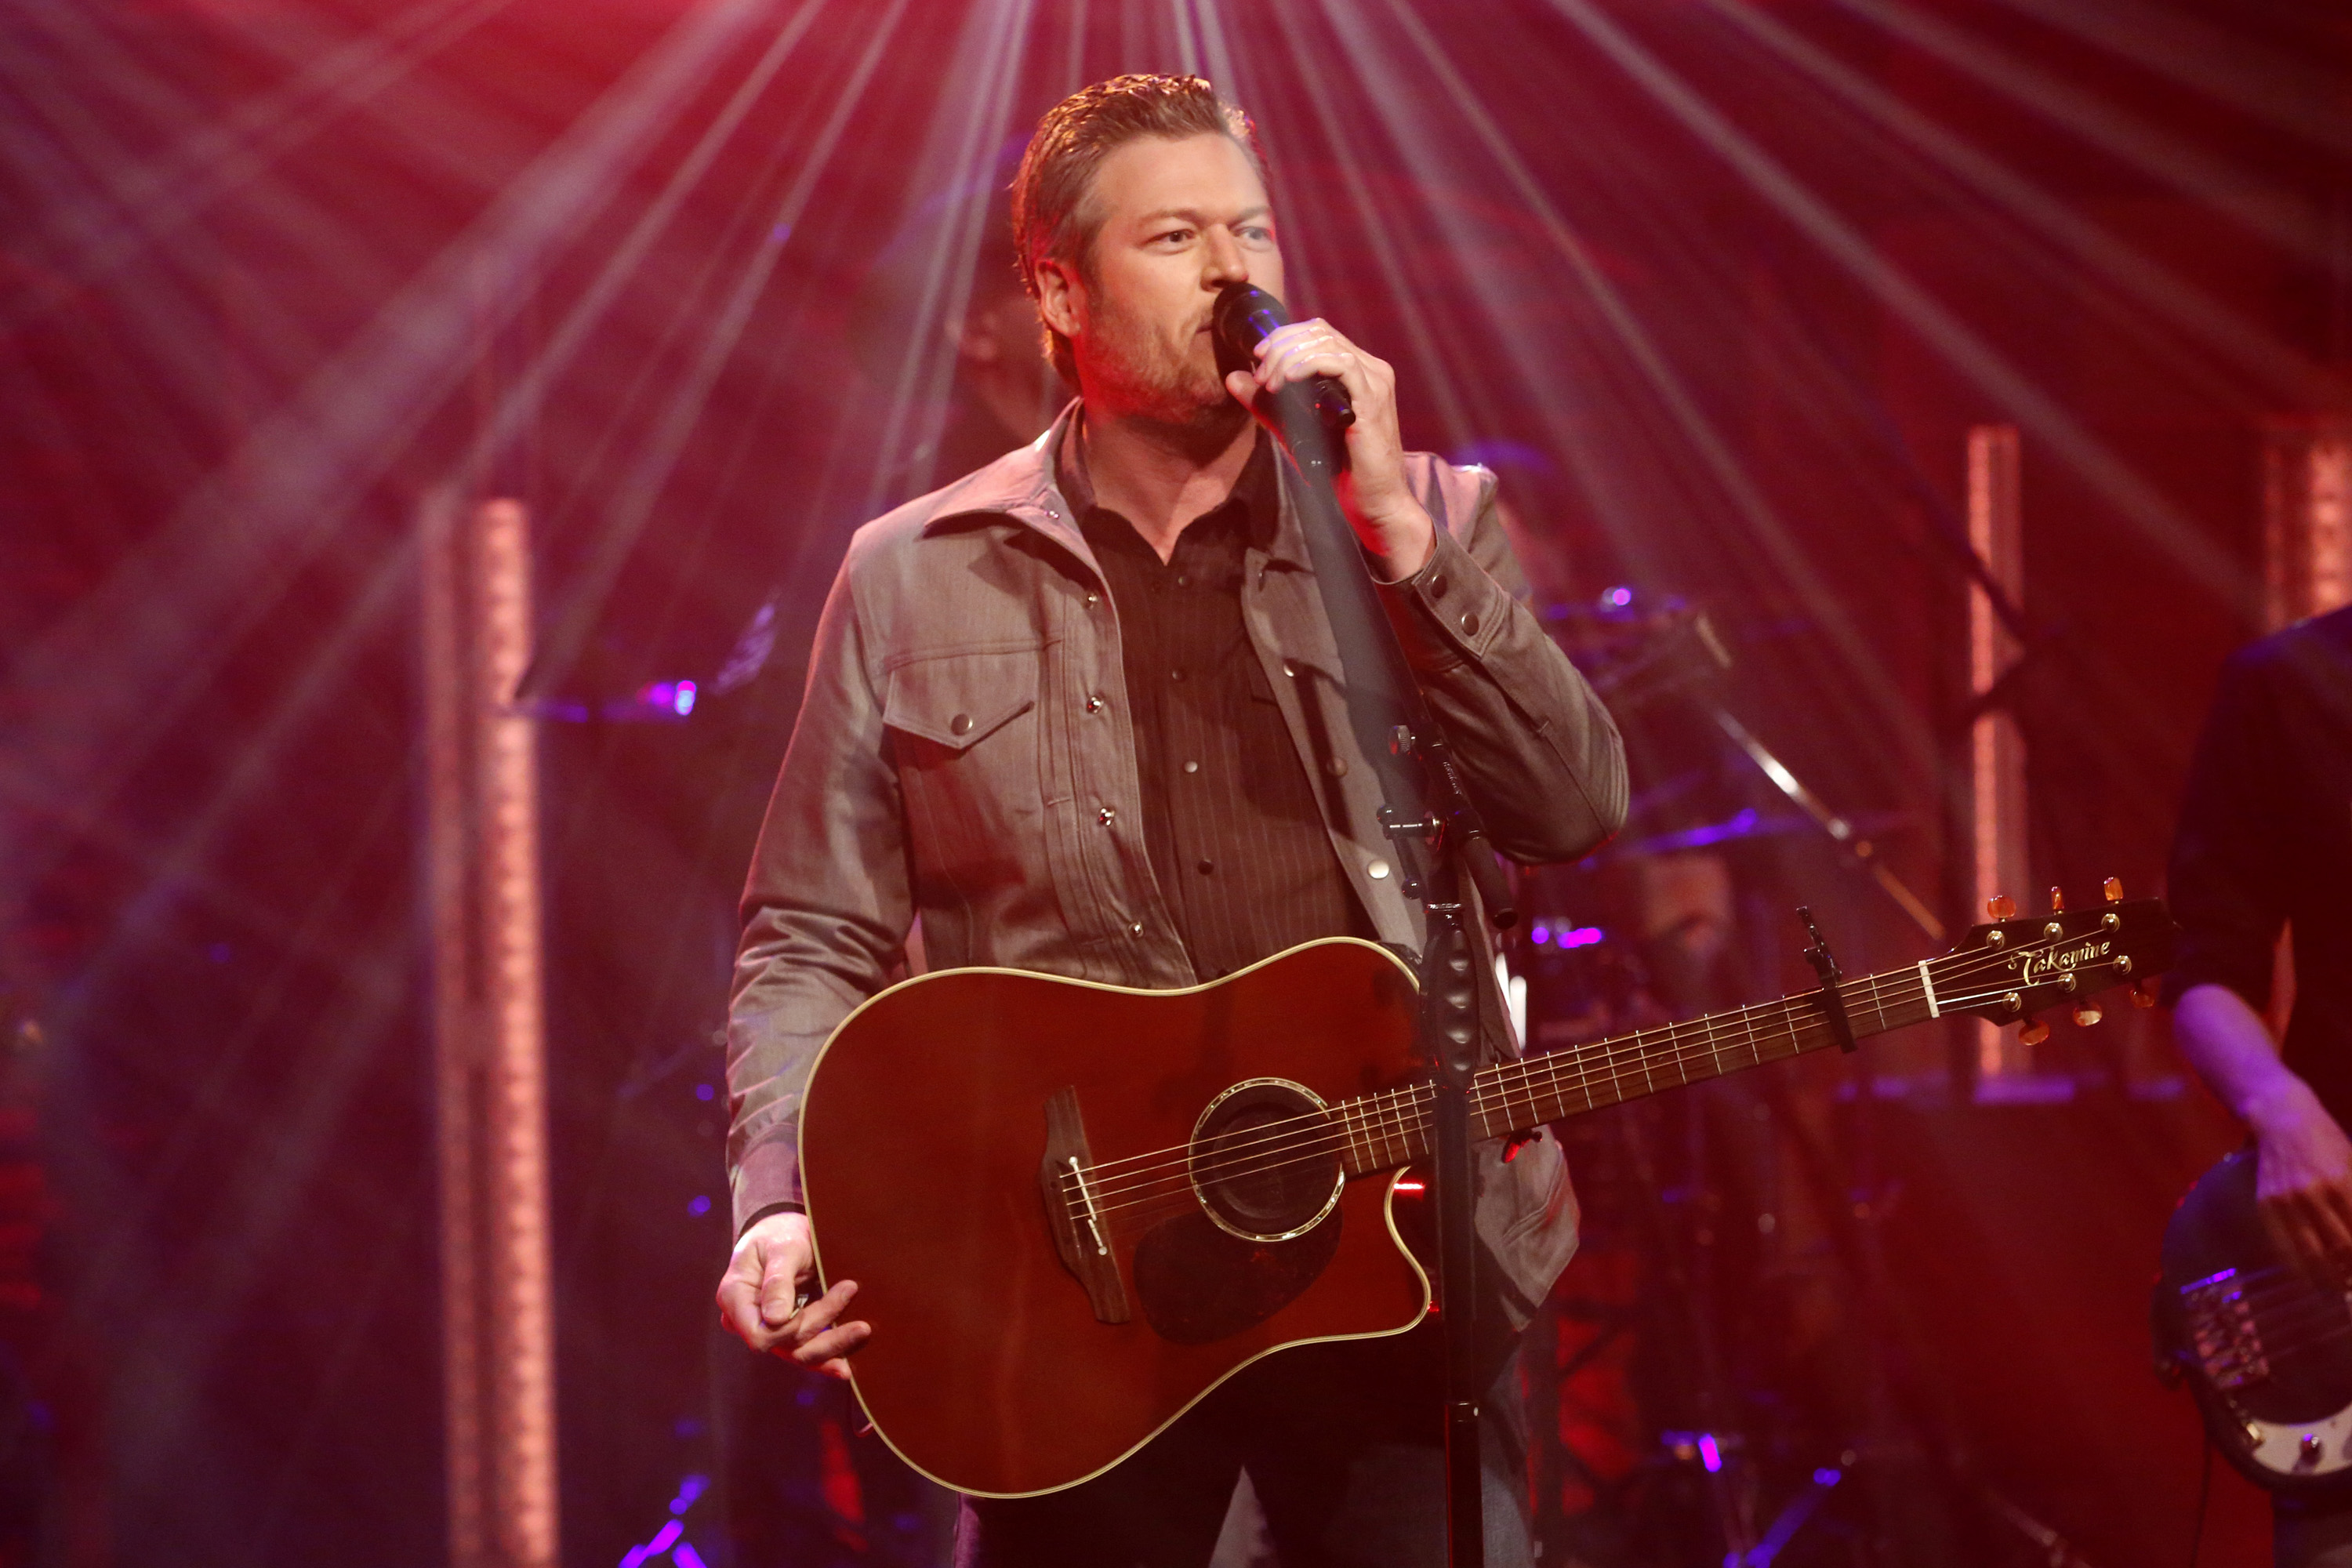 LATE NIGHT WITH SETH MEYERS -- Episode 663 -- Pictured: Musical guest Blake Shelton performs on March 20, 2018 -- (Photo by: Lloyd Bishop/NBC/NBCU Photo Bank via Getty Images)